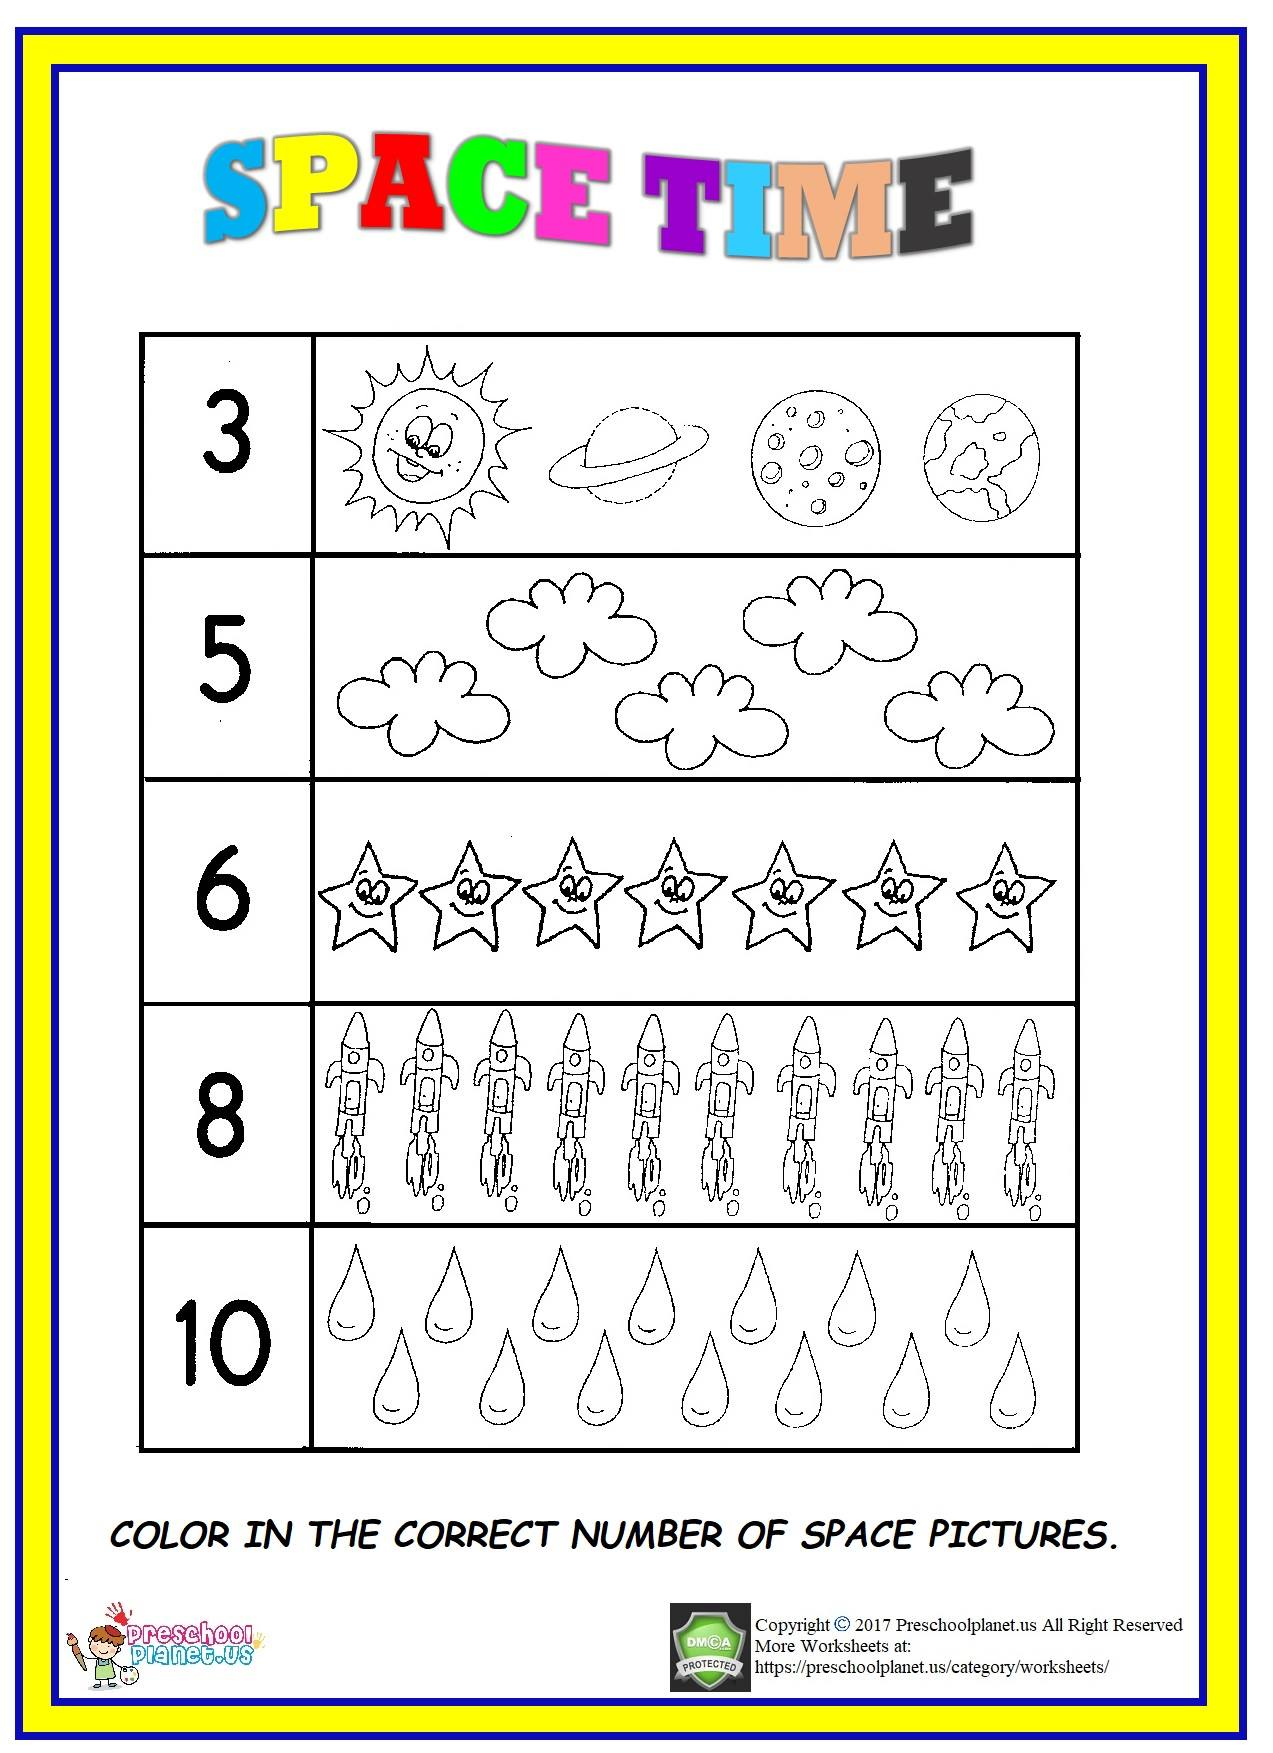 Shapes Worksheet Preschoolplanet